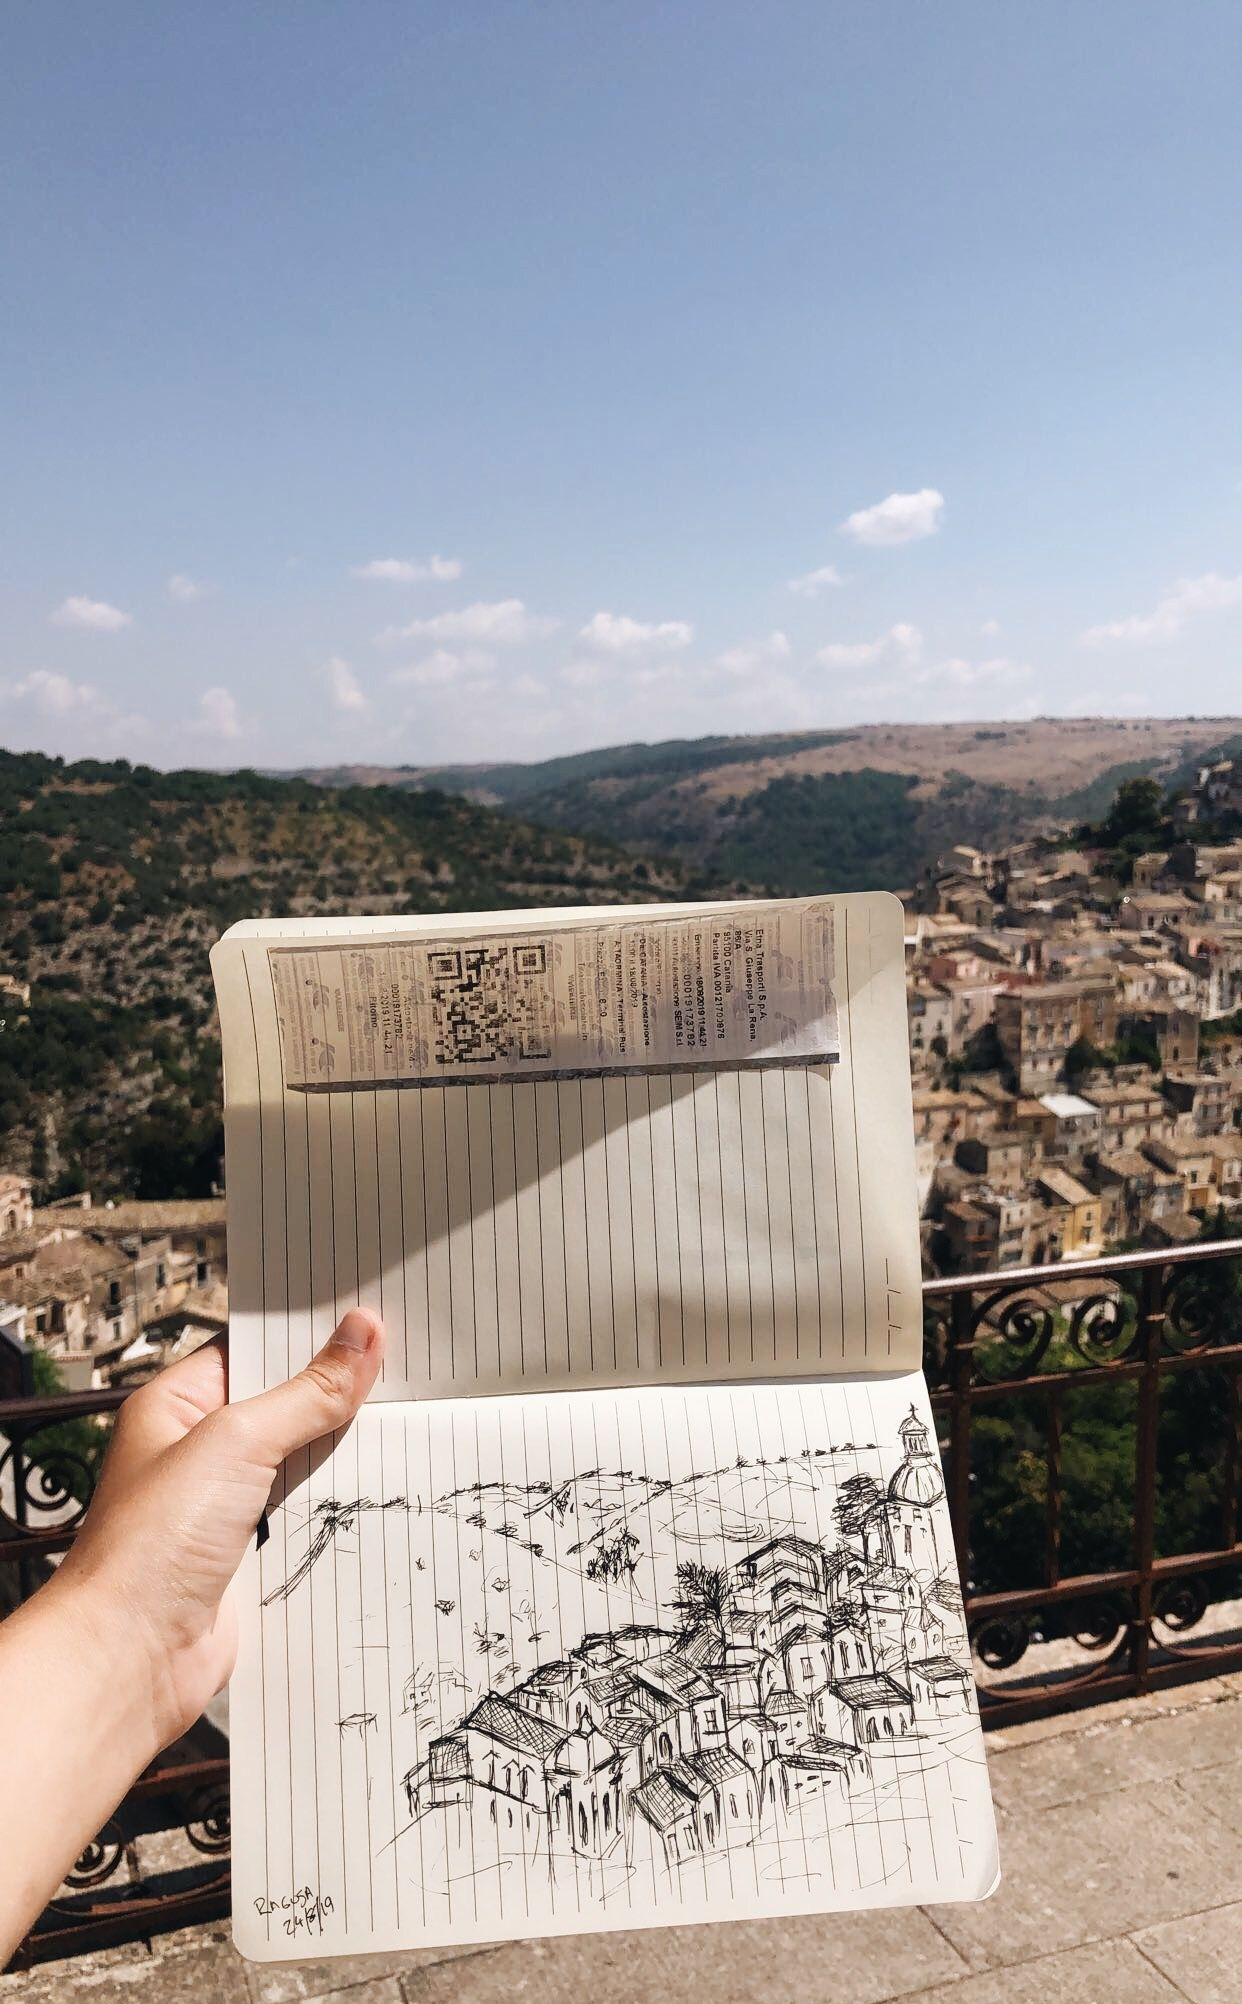 Quick sketch from Ragusa, Sicily - Italy! #italytravel #italy #sicily #sicilytravel #ragusa #drawing #traveljournal #travelsketch #travelsketchbook #inkdrawing #europe #europetravel